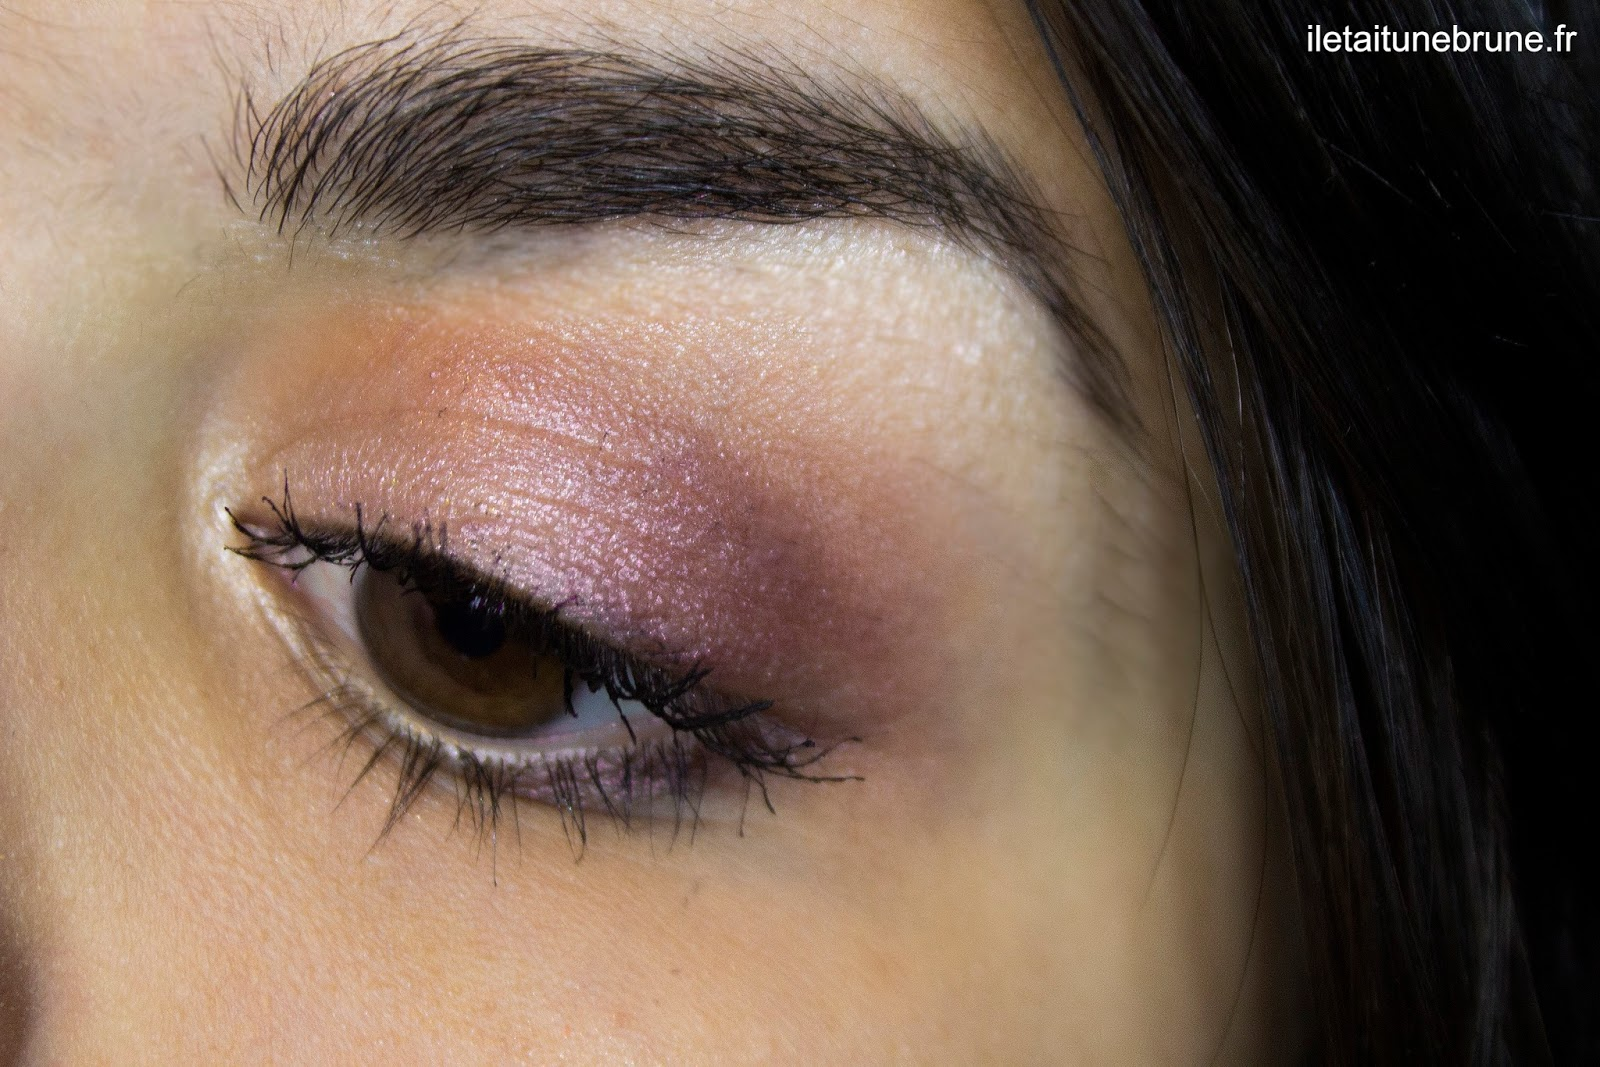 Maquillage vieux rose lumineux